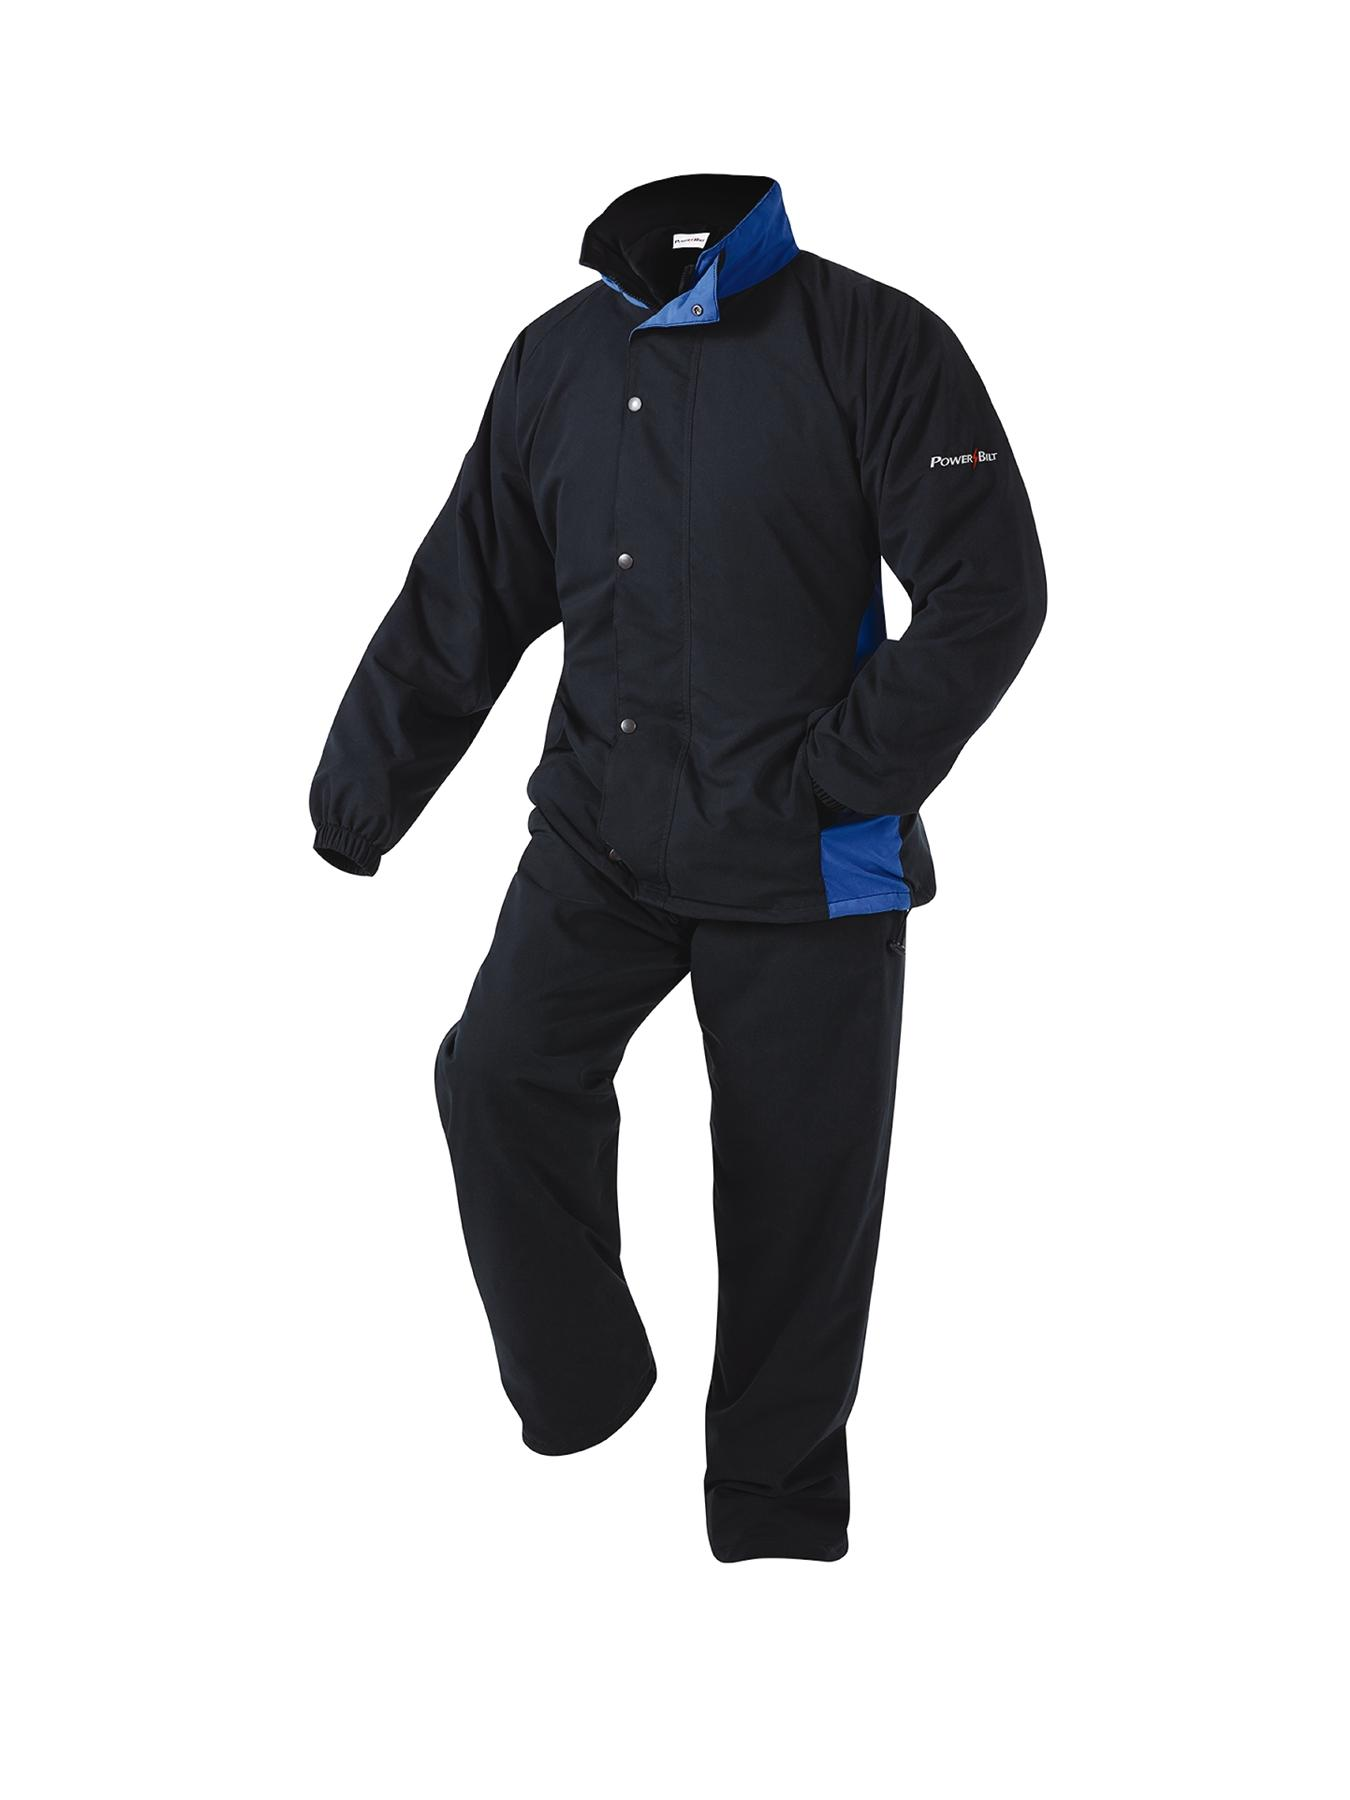 Powerbilt Nimbus Waterproof Mens Golf Suit - Black, Black